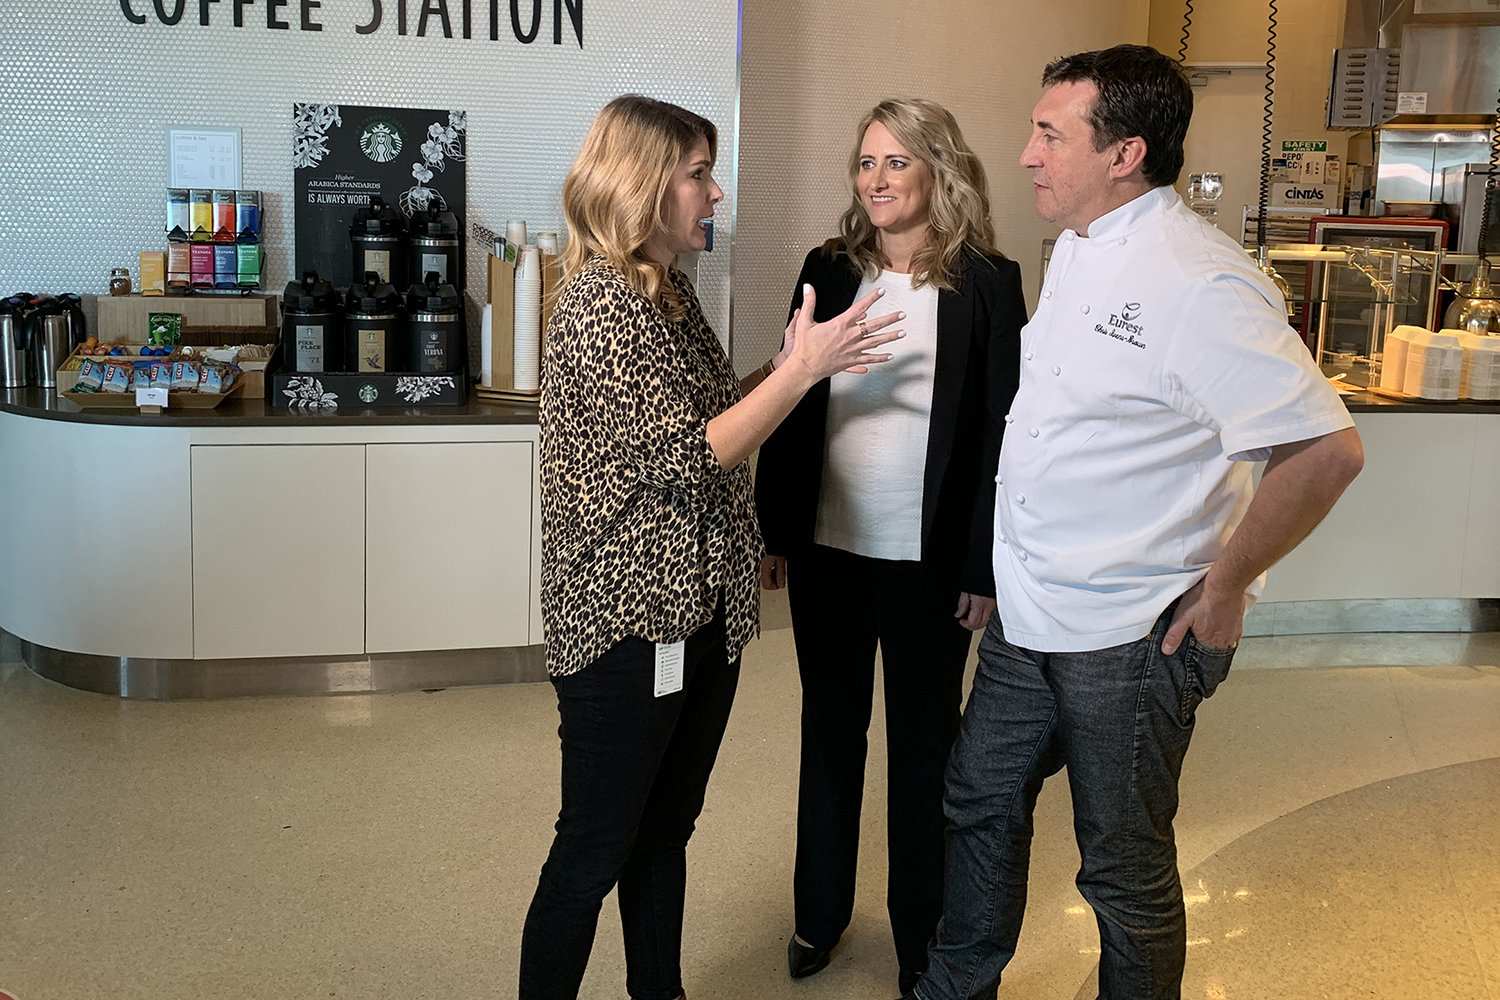 Chef and RDs Collaborate